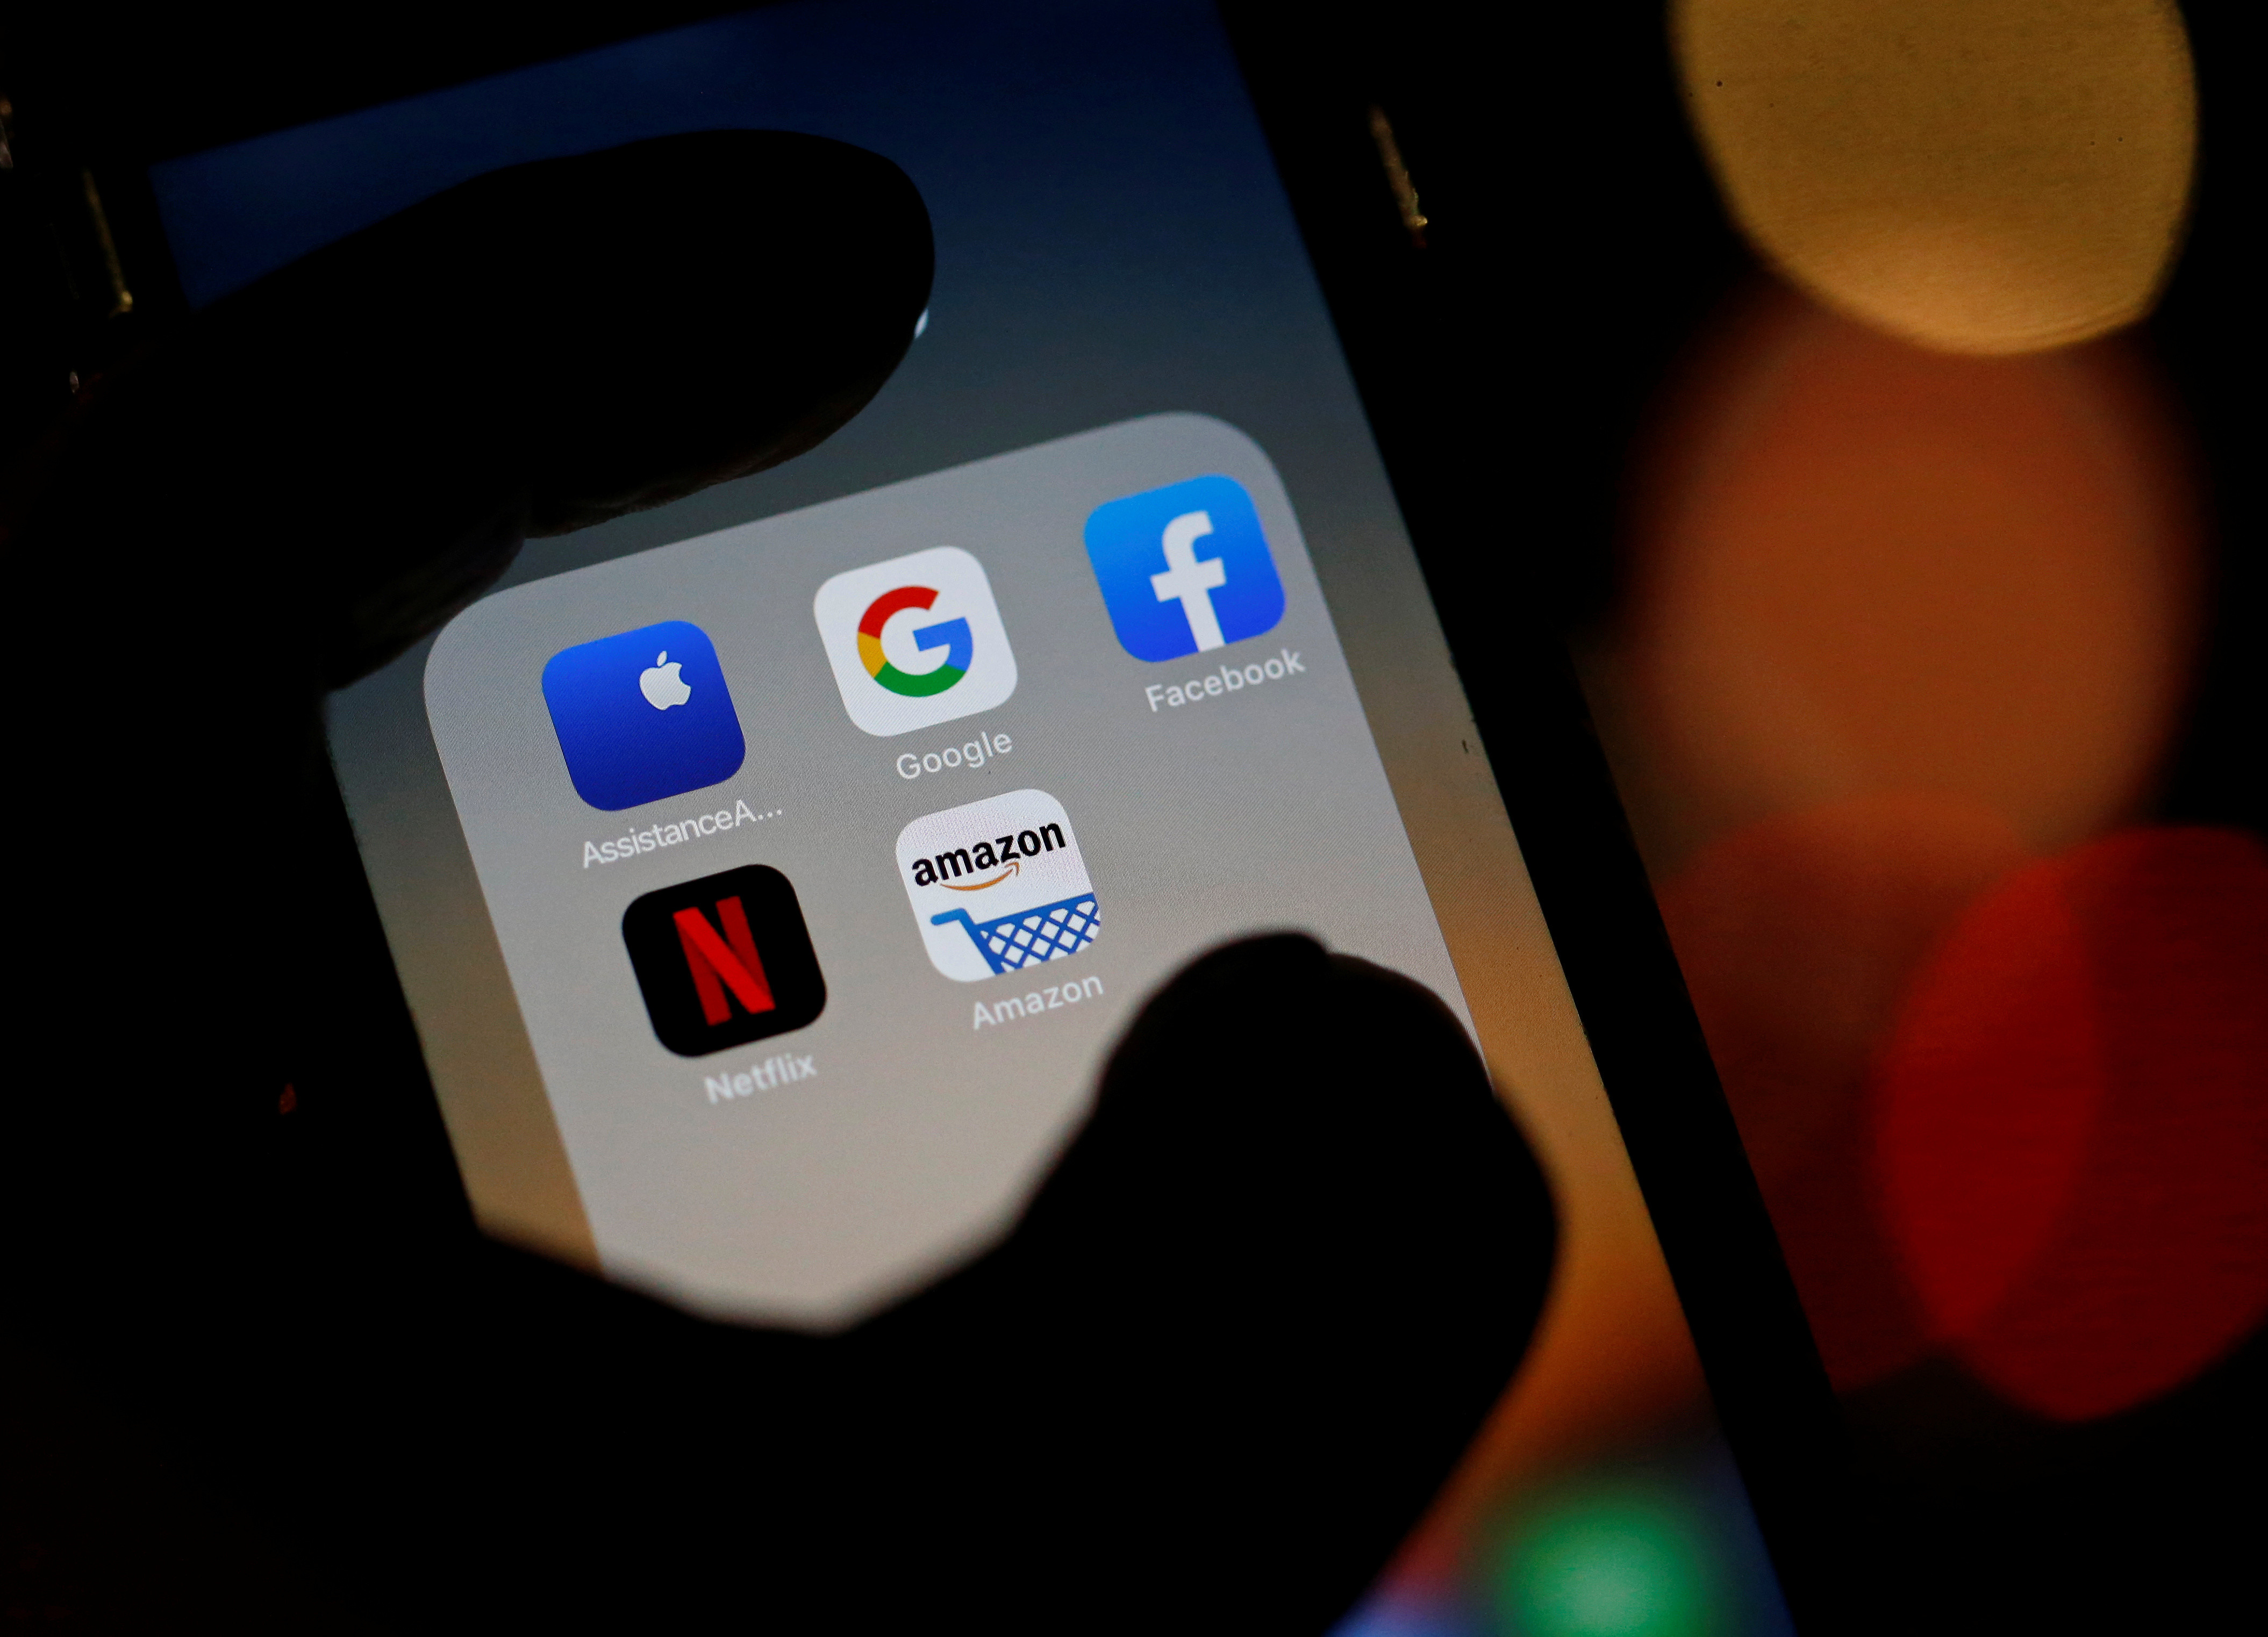 The logos of mobile apps, Google, Amazon, Facebook, Apple and Netflix, are displayed on a screen in this illustration picture taken December 3, 2019. REUTERS/Regis Duvignau - RC2VND9O022Y